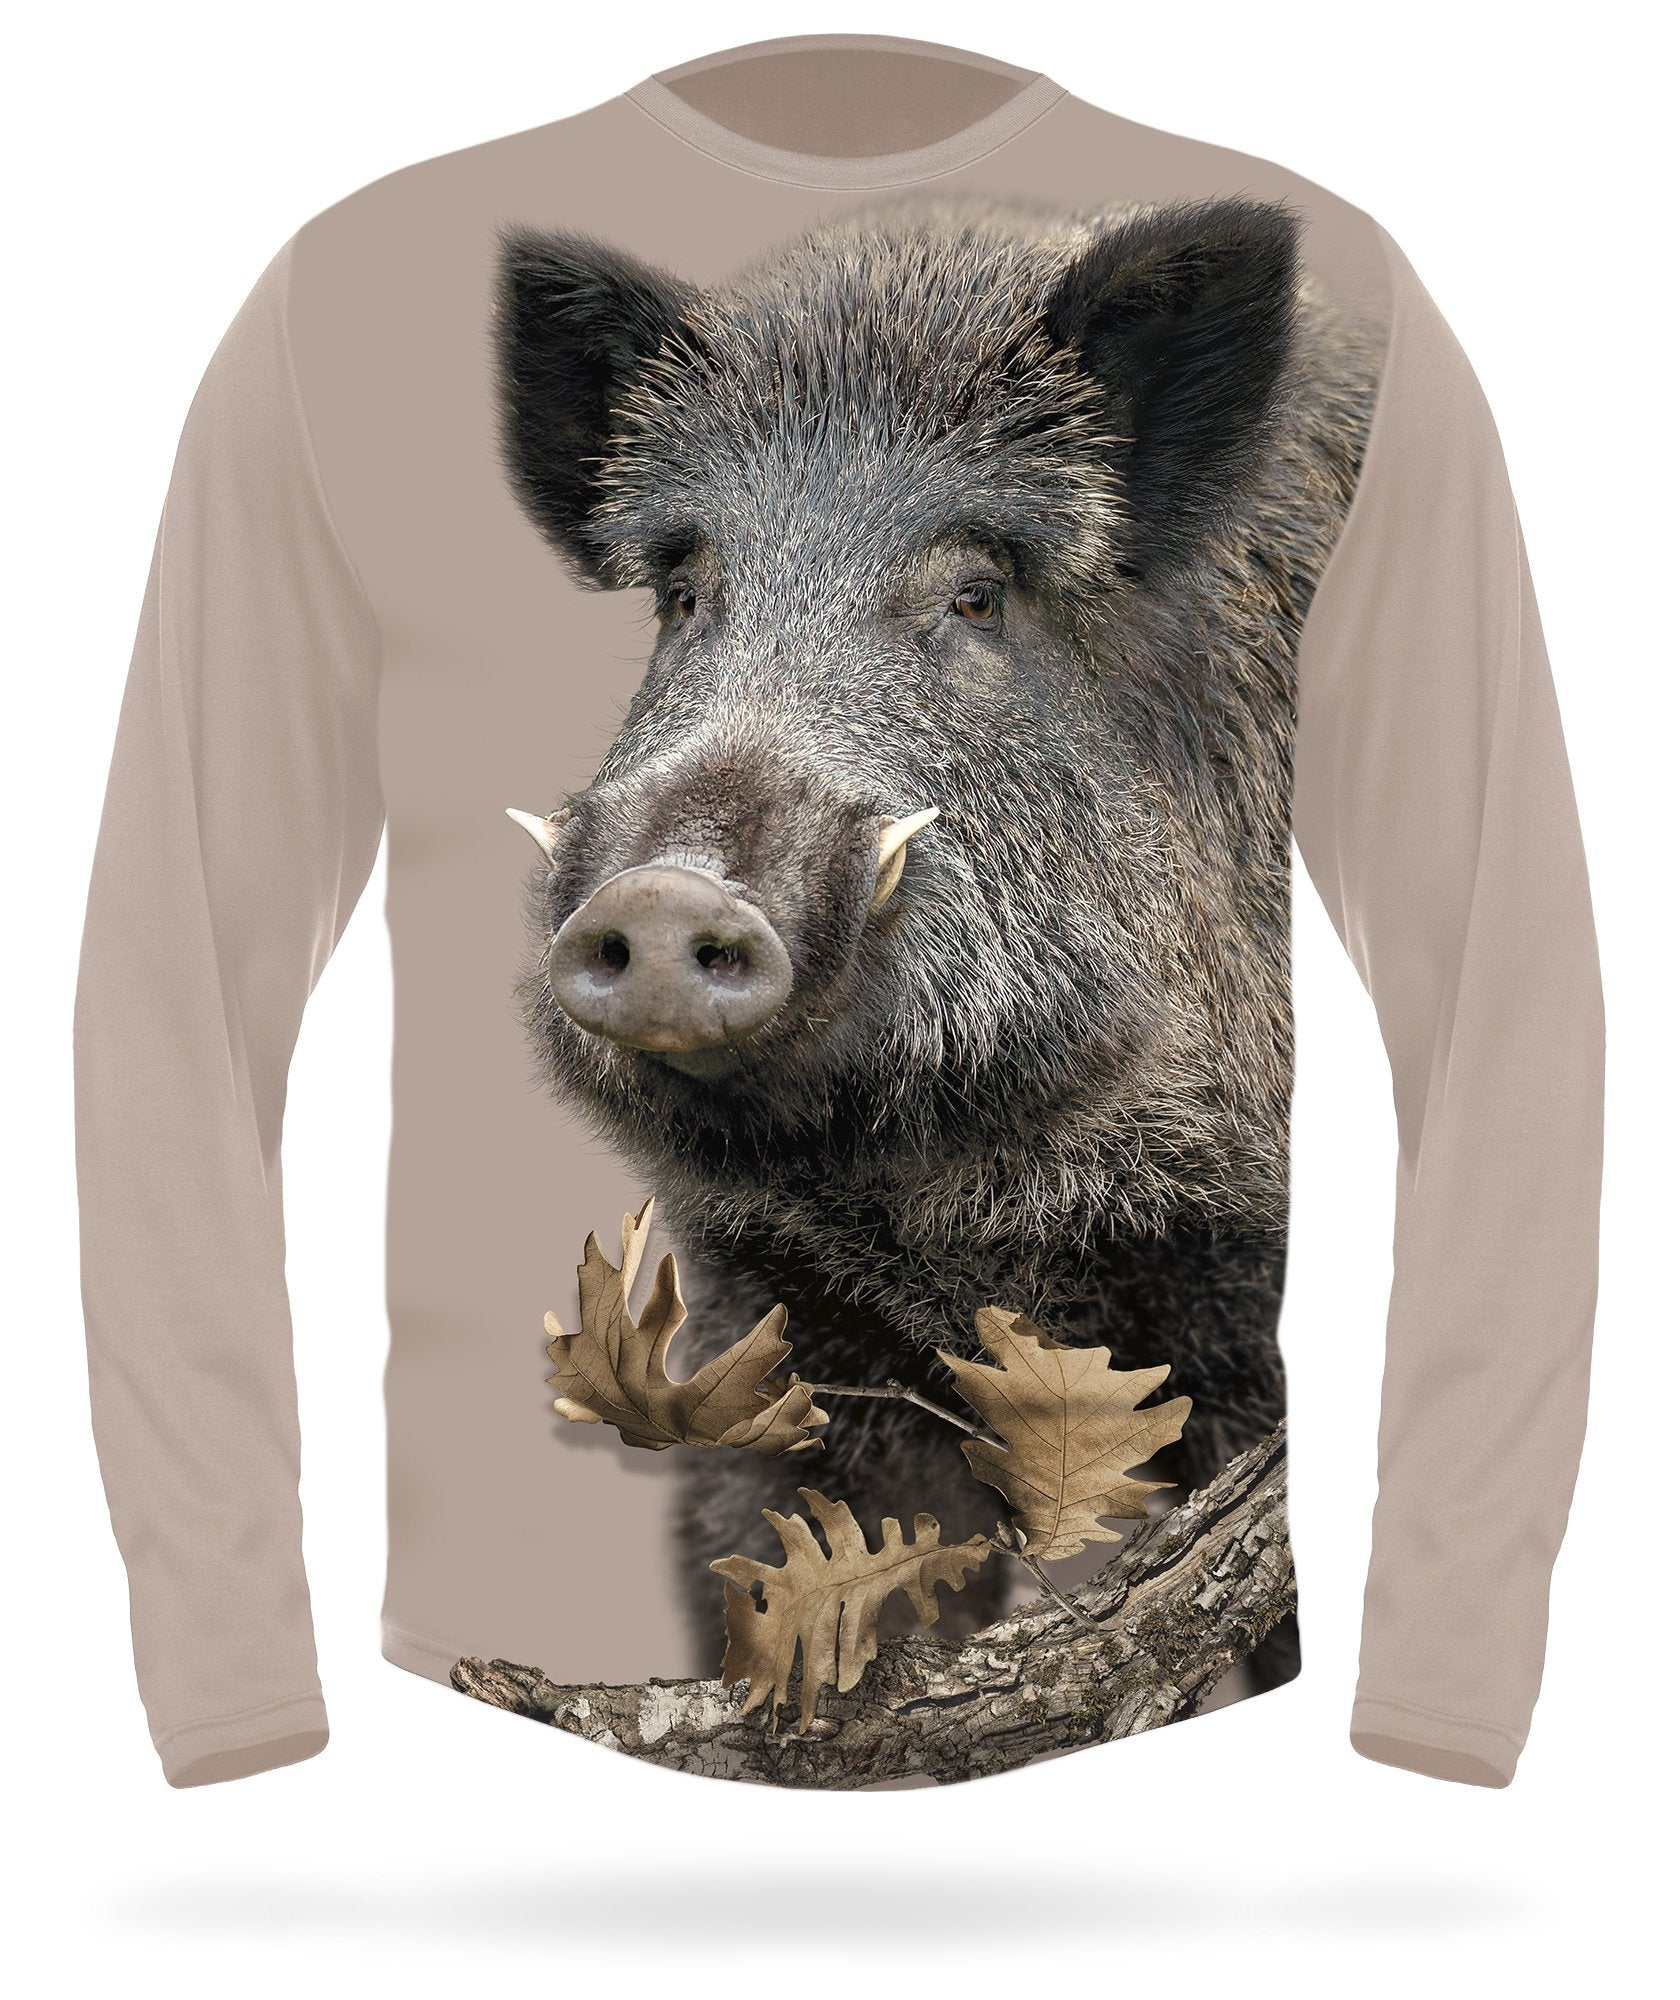 Wild Boar T-shirt long sleeve by HILLMAN® hunting gear